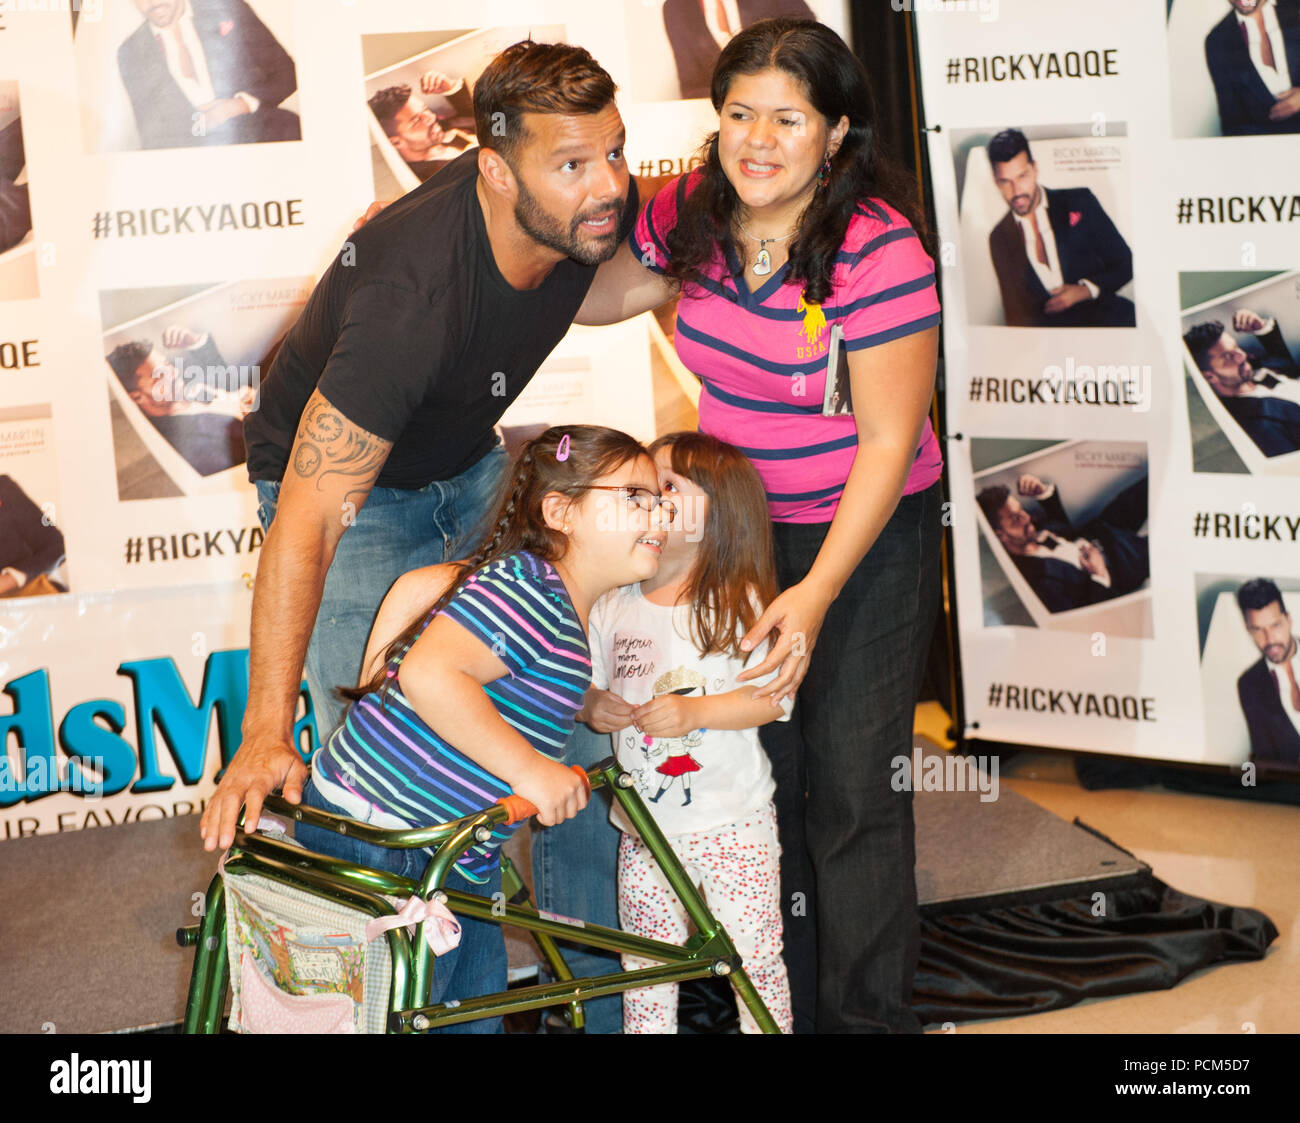 Miami Fl February 16 Ricky Martin Meets And Greets Fans At Brandsmart On February 16 2015 In Miami Florida People Ricky Martin Stock Photo 214343619 Alamy